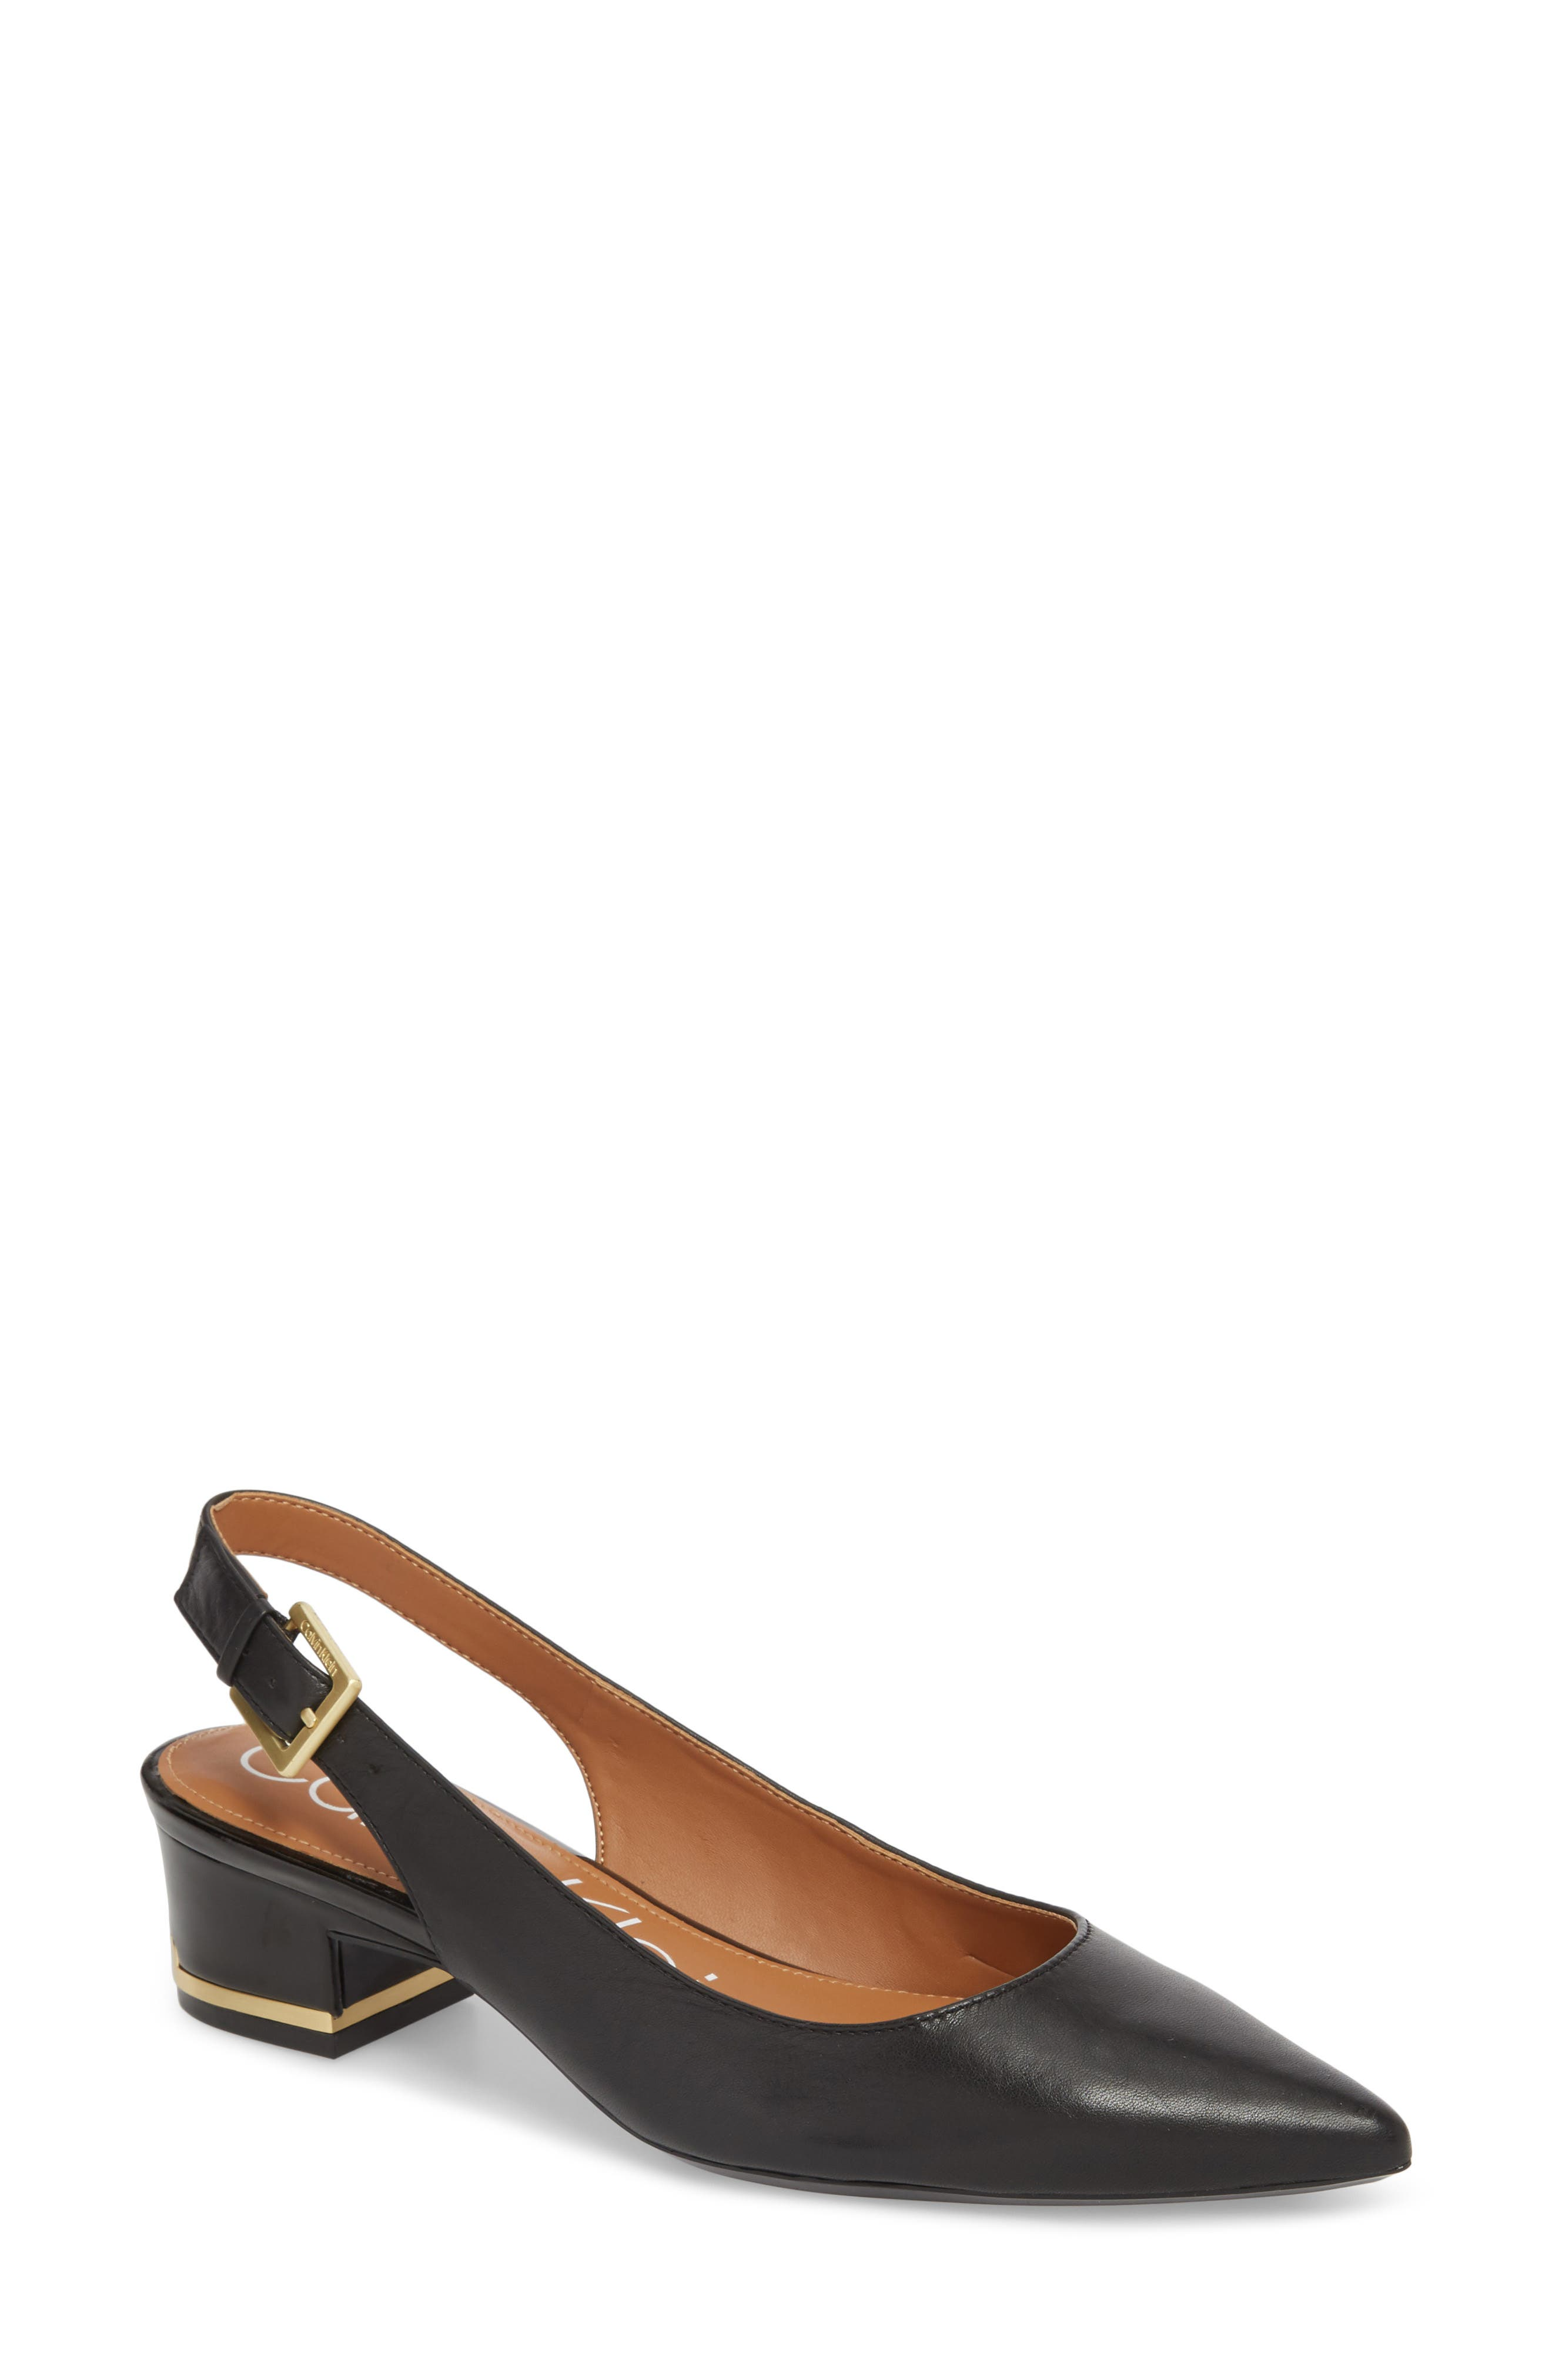 Glorianne Slingback Pointy Toe Pump,                         Main,                         color, BLACK LEATHER